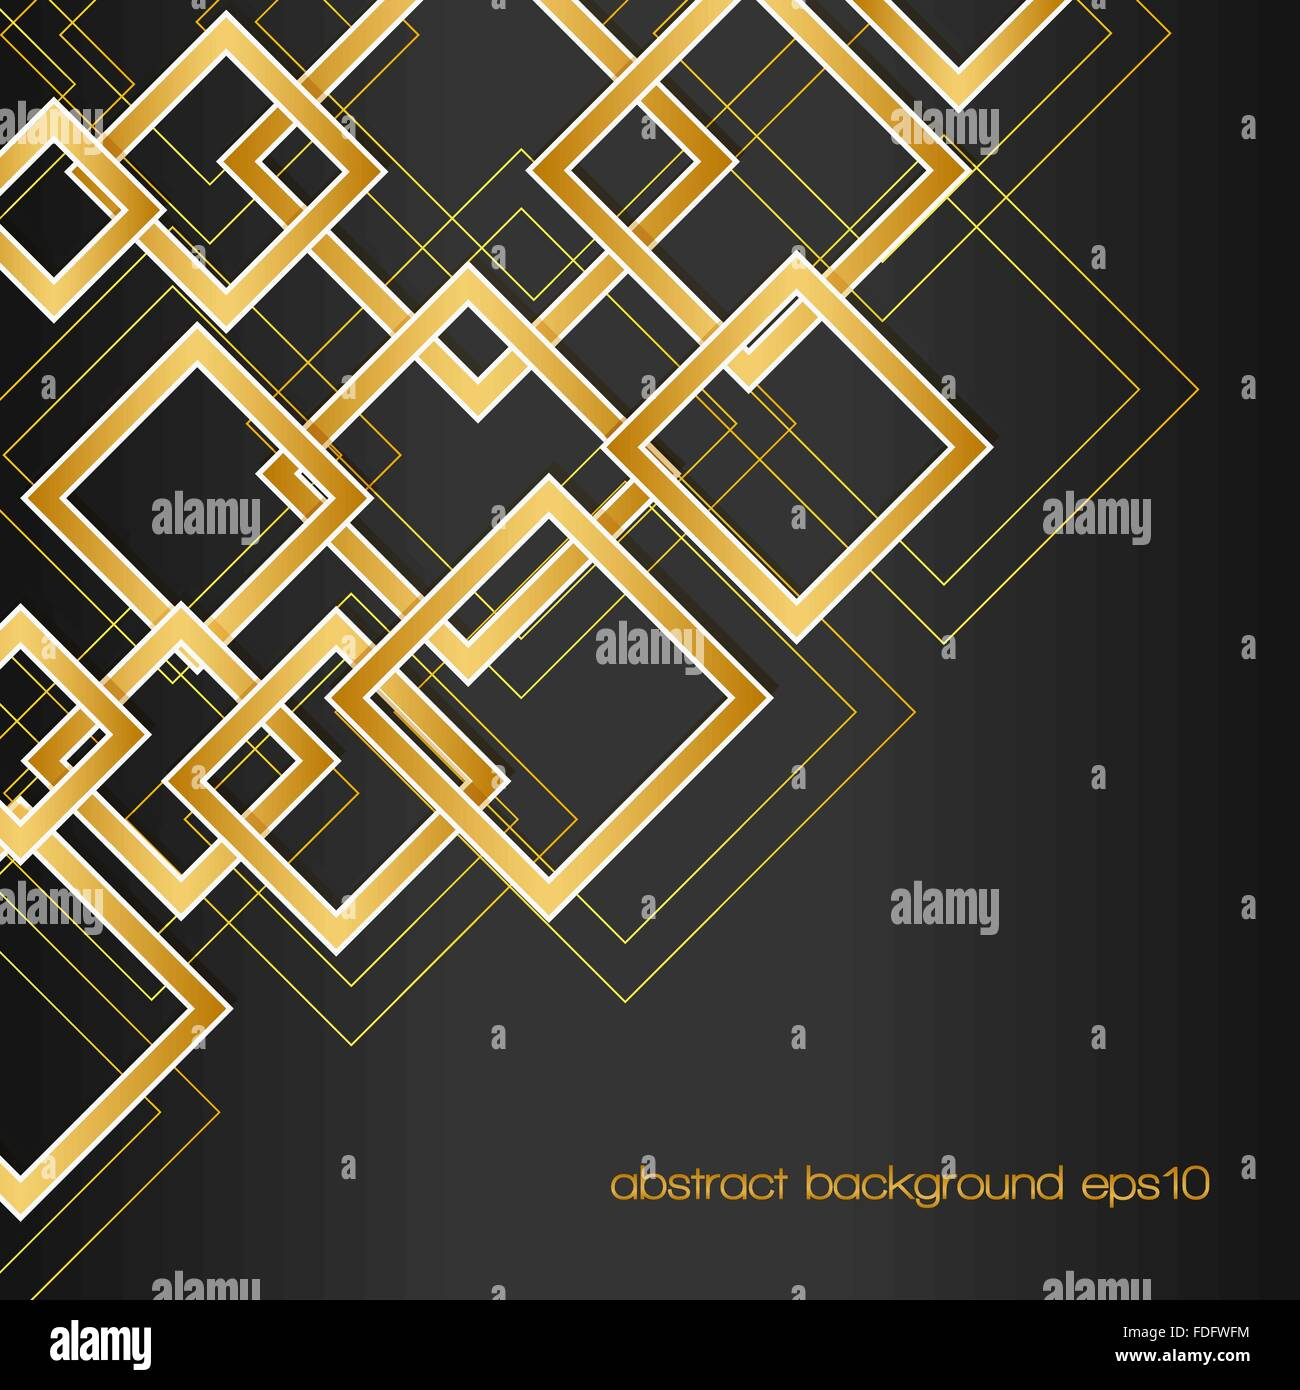 Abstract Background With Golden Rhombus Frames And Lines On